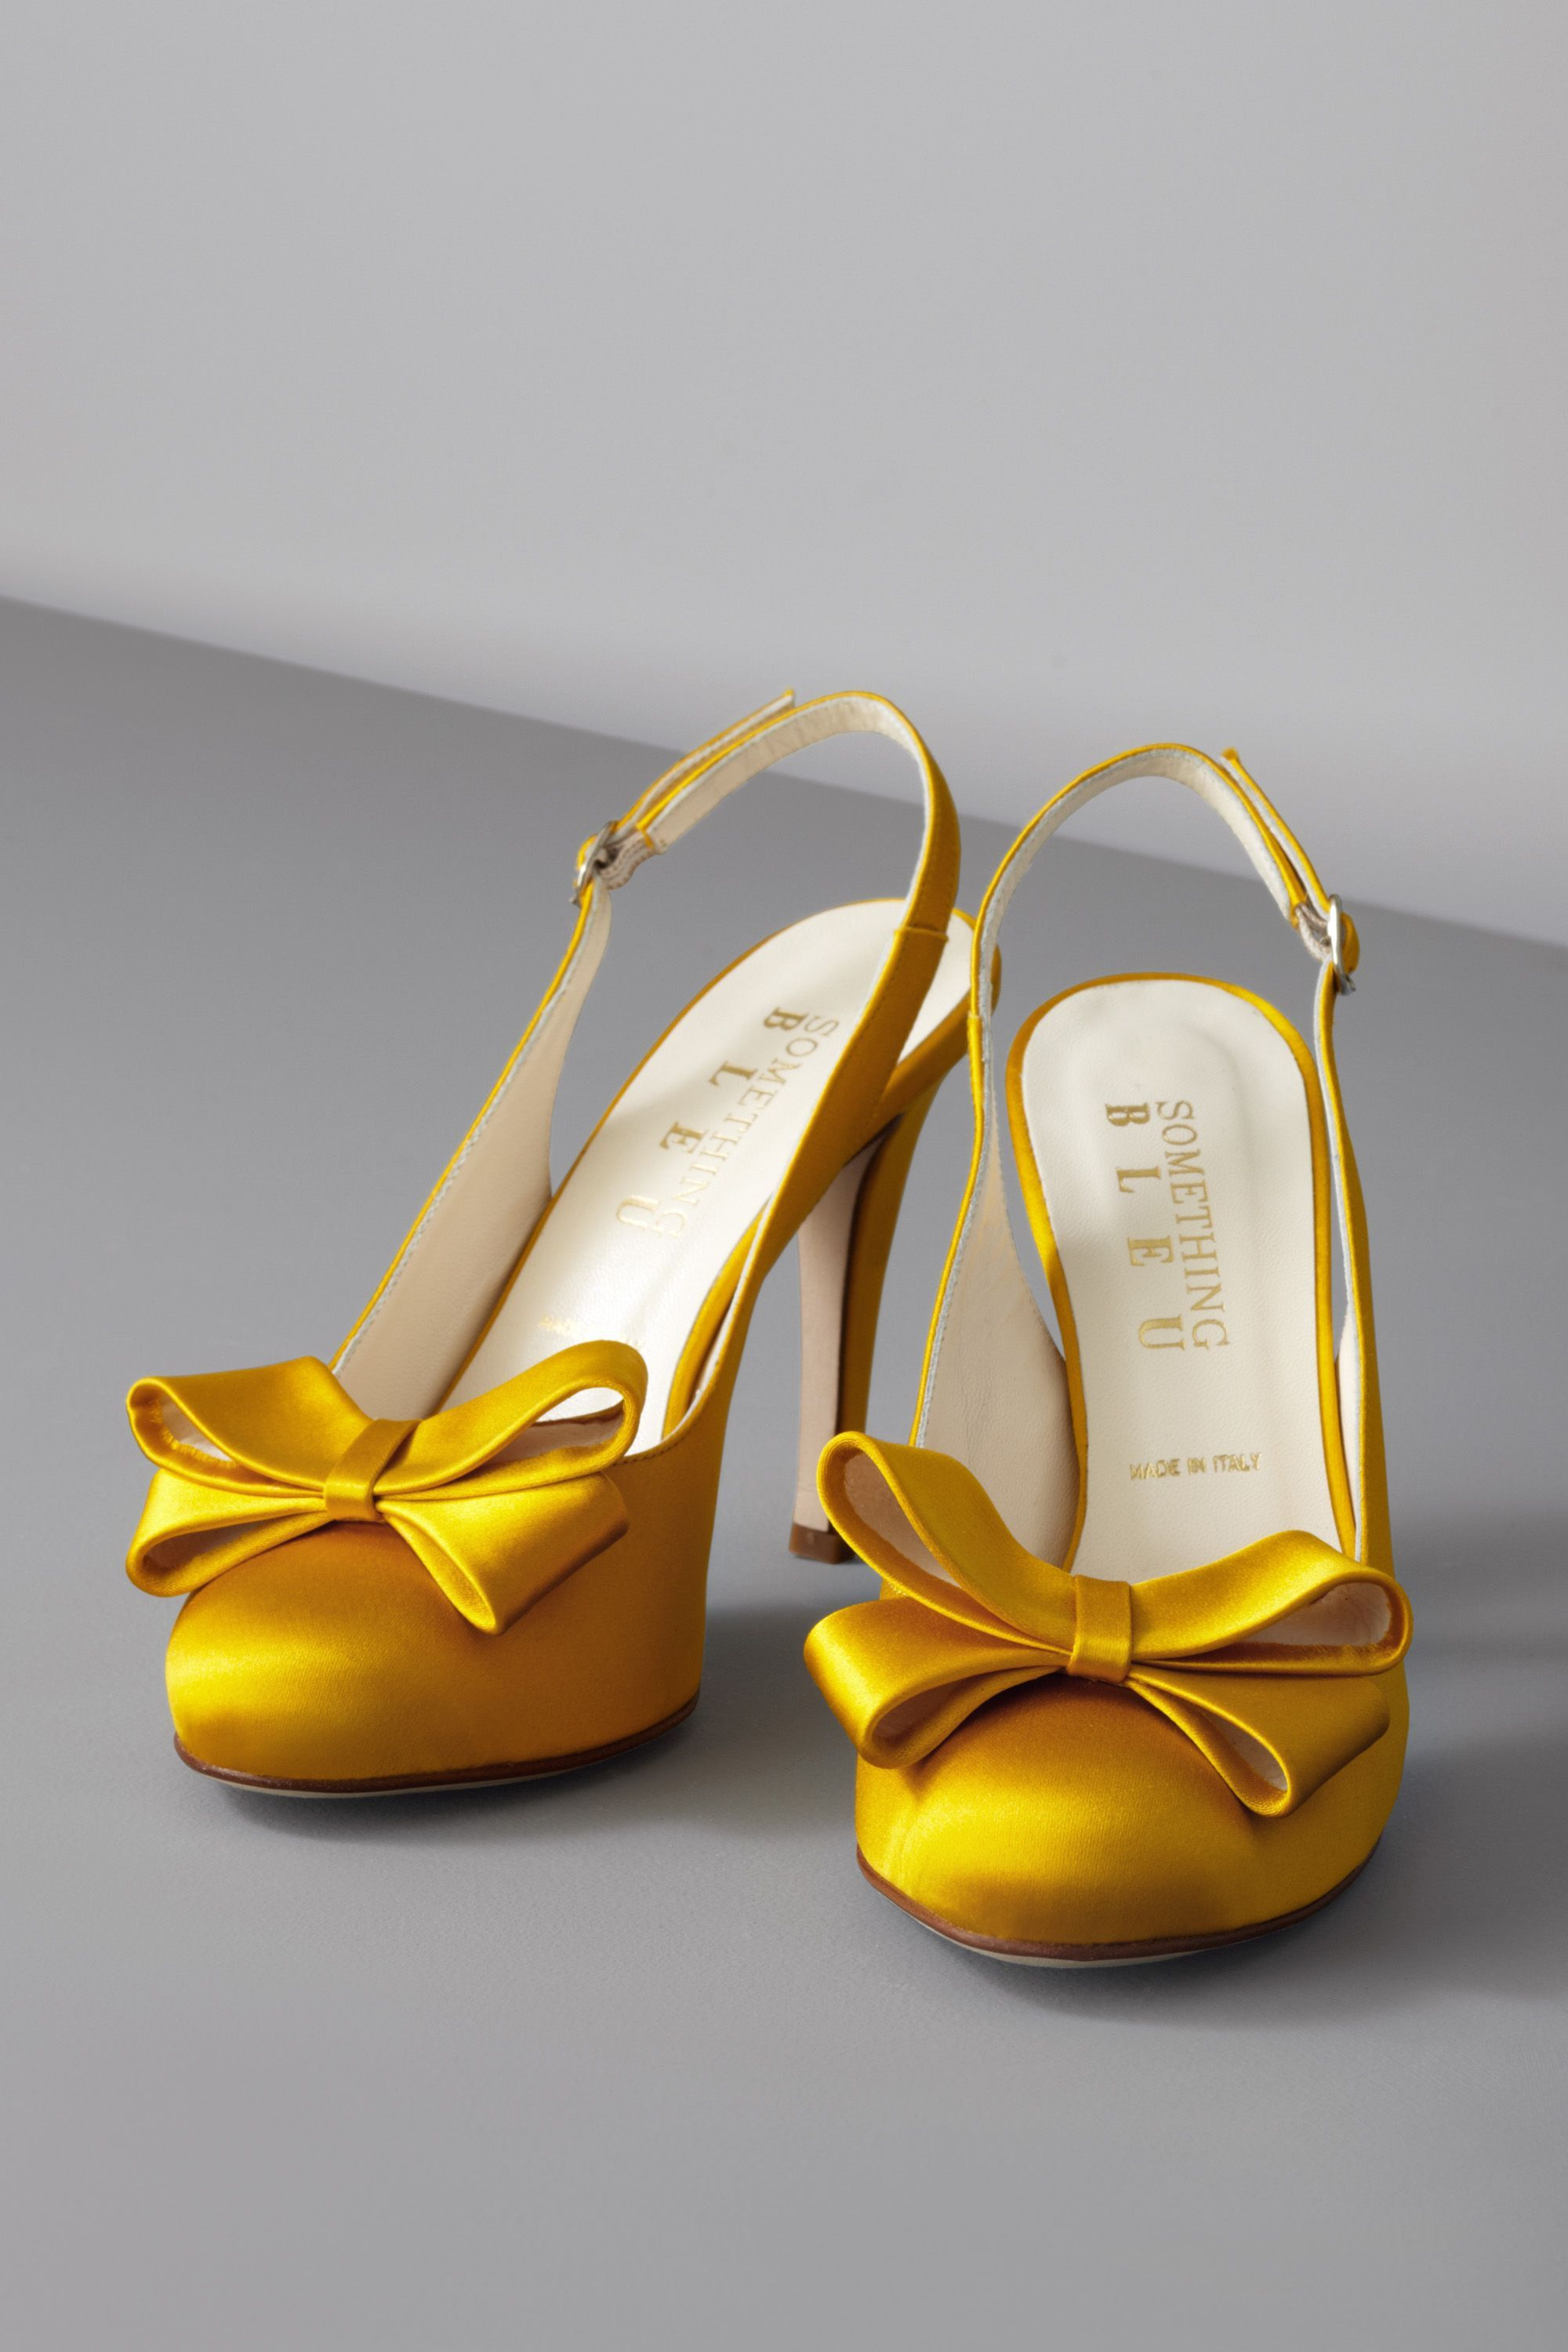 Bow Topped Slingbacks In The Shop Shoes At Bhldn Yellow Shoes Yellow Wedding Shoes Shoes